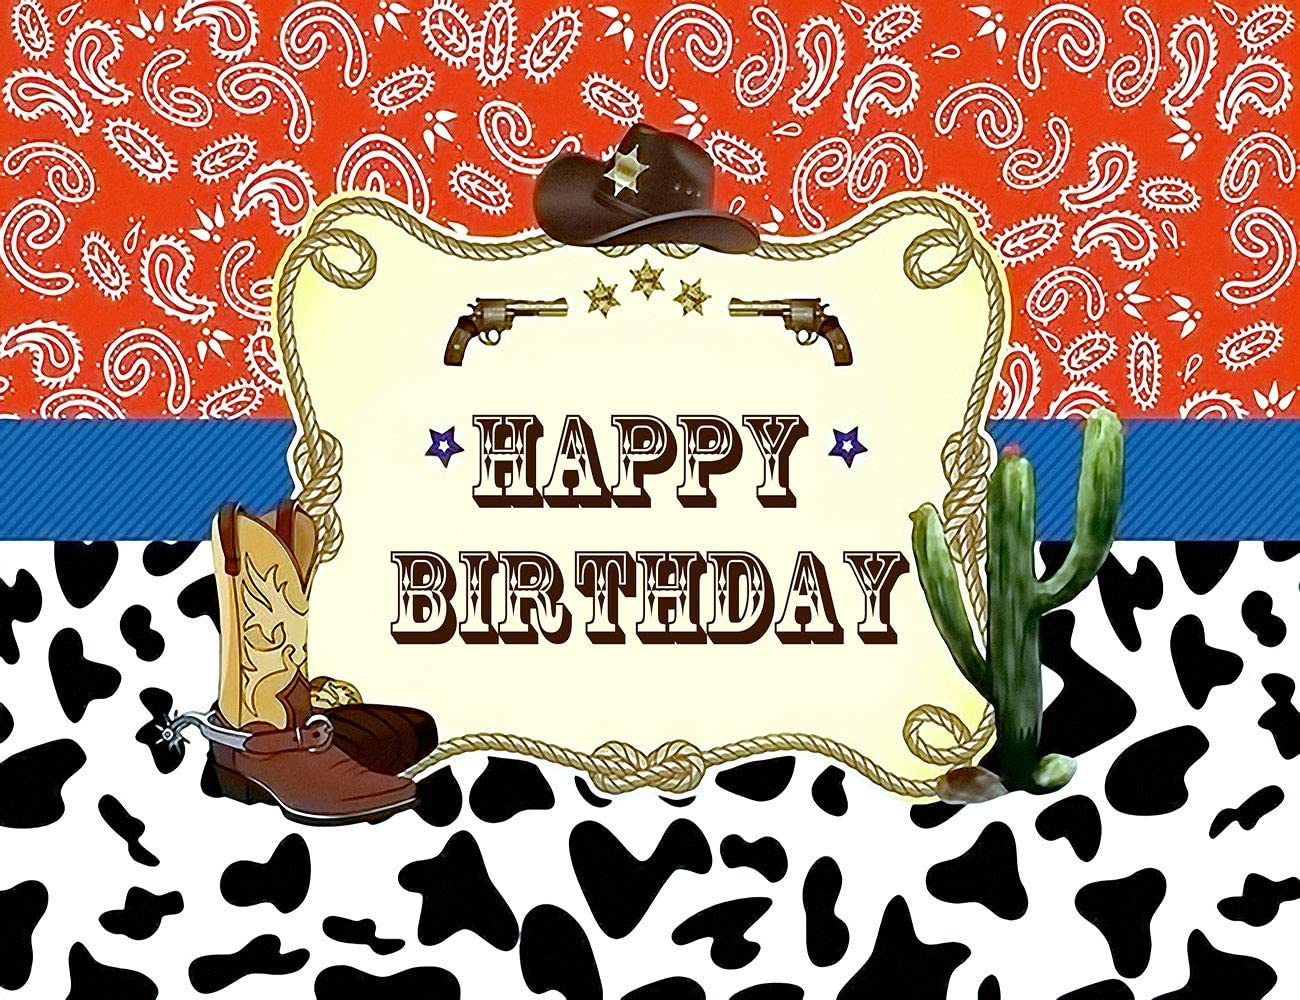 LB 7x5ft Cowboy Backdrops for Kids Children Birthday Party Photography Background Baby Shower Photo Backdrop Cactus Desert Black and White Spots Decor,Fabric Seamless Washable Photoshoot Studio Props